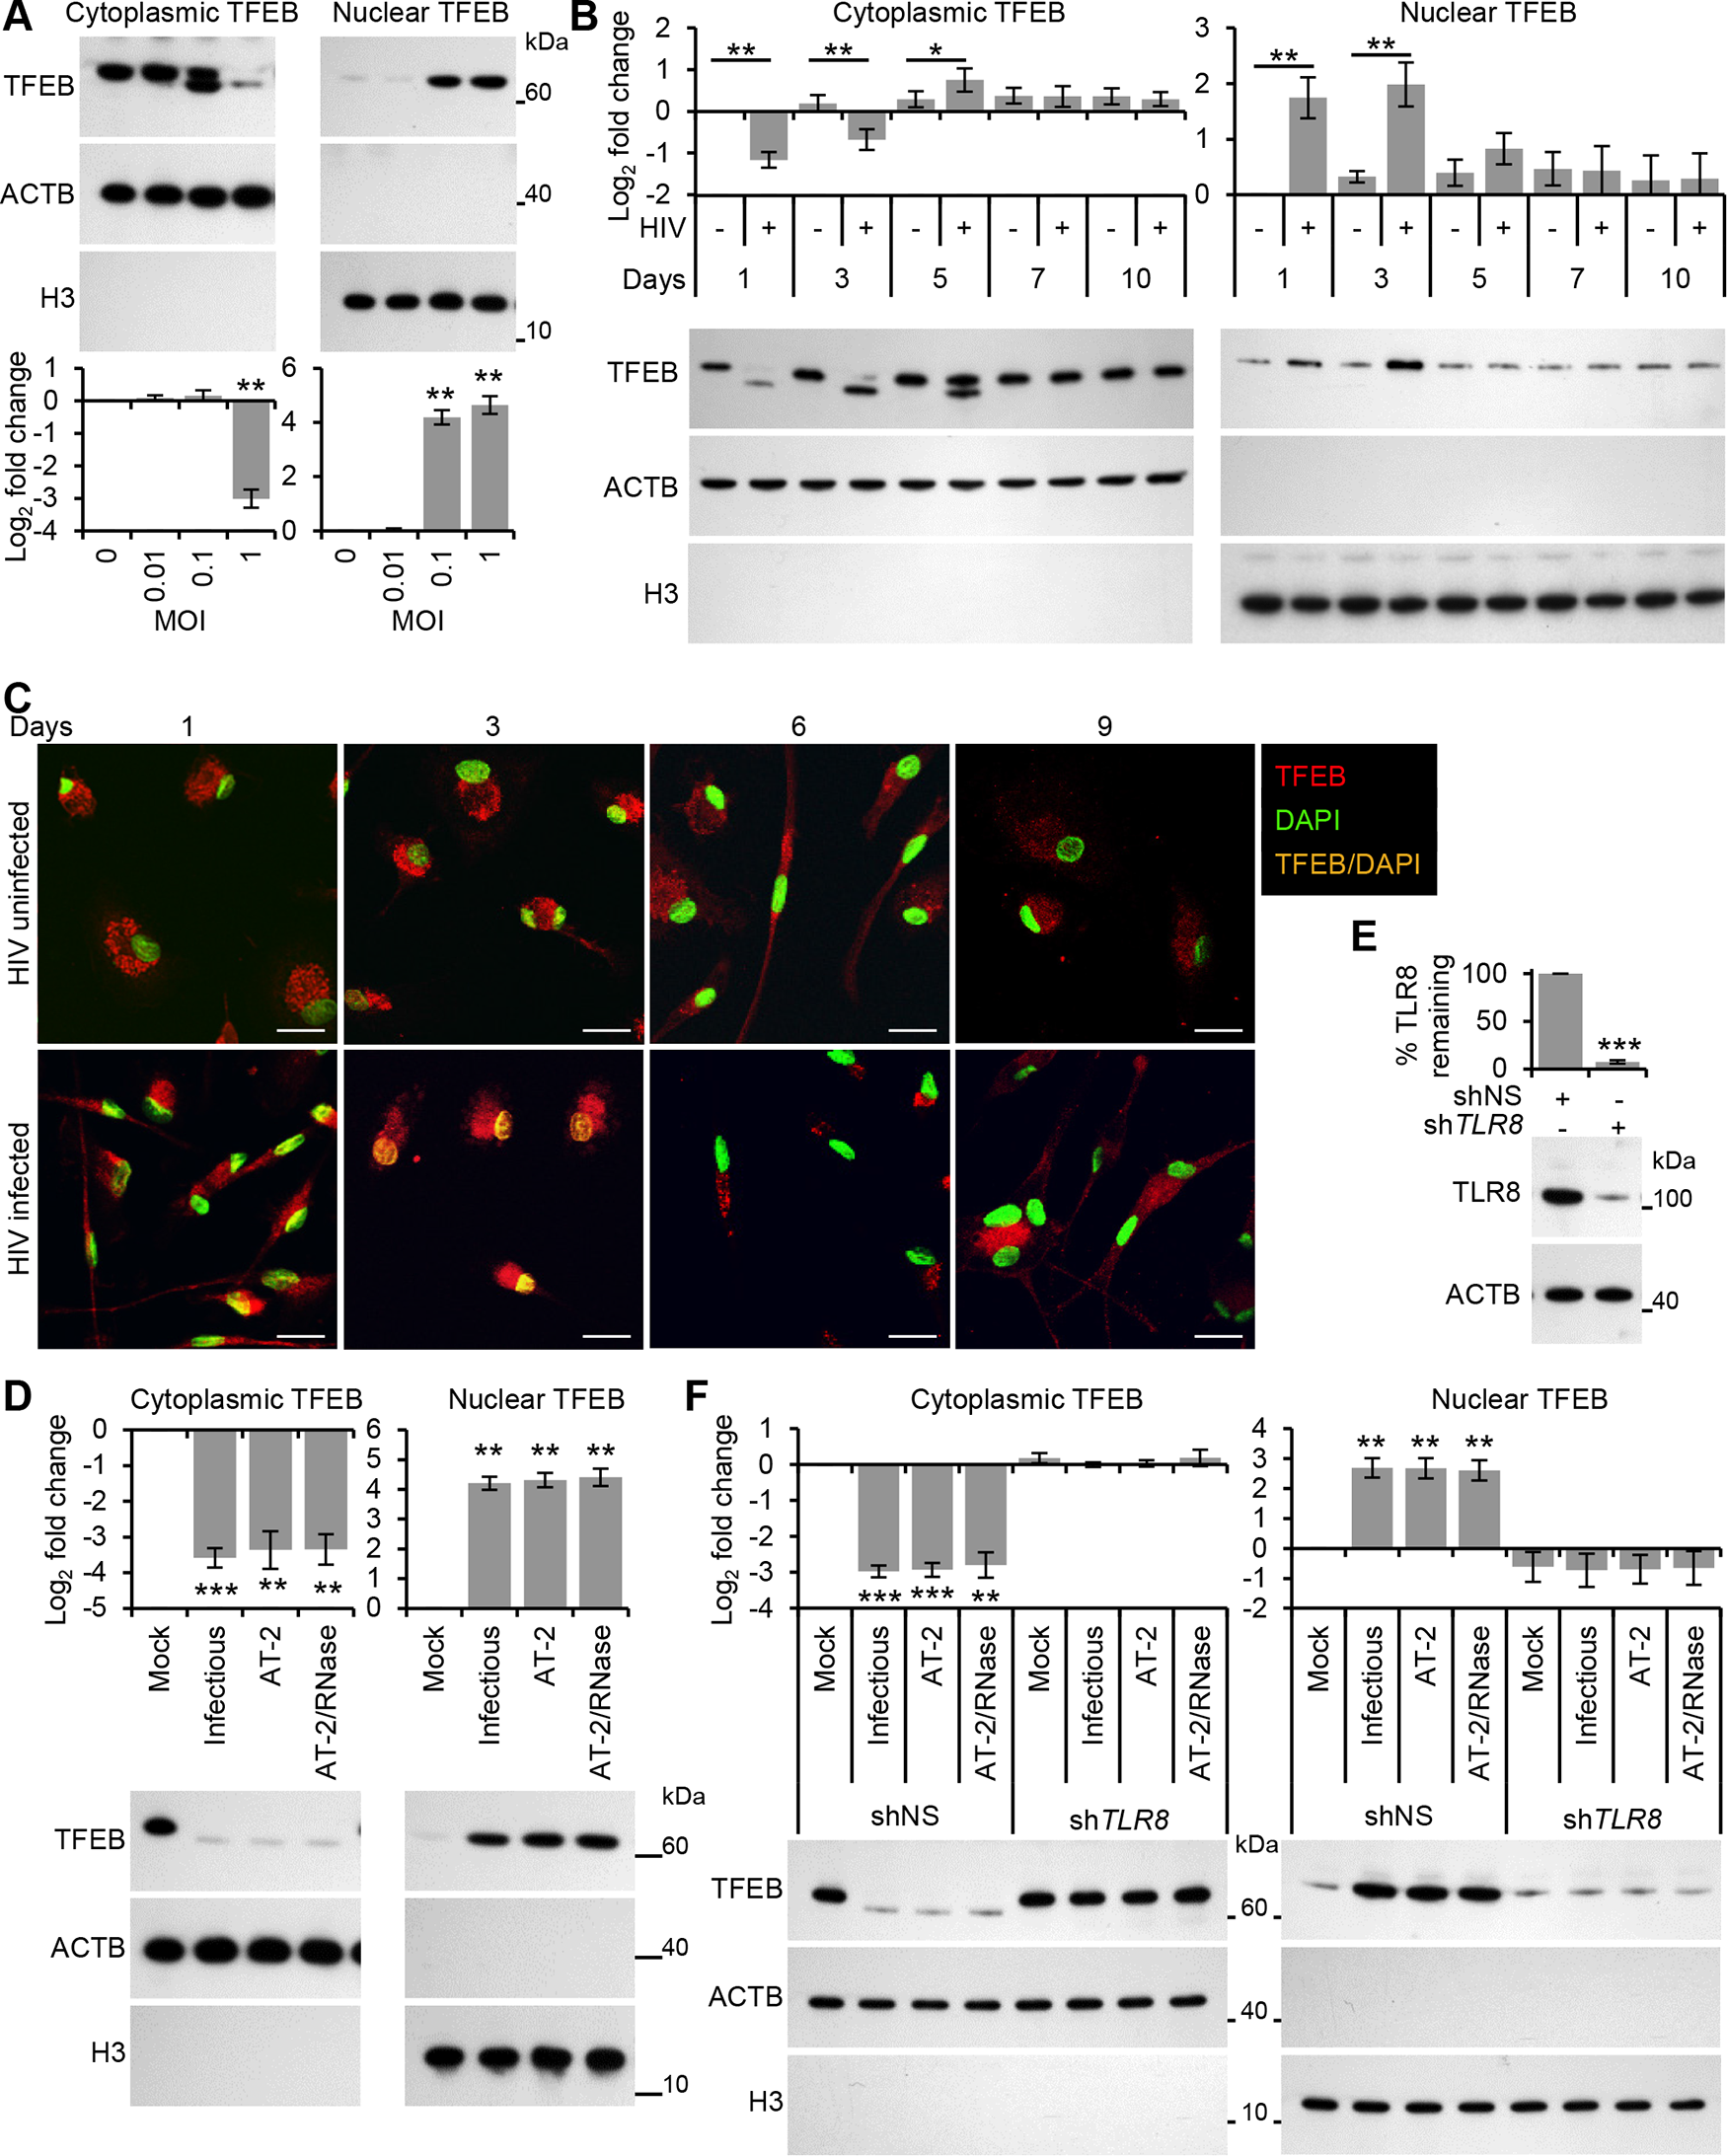 HIV induces TFEB nuclear localization in human macrophages through TLR8.